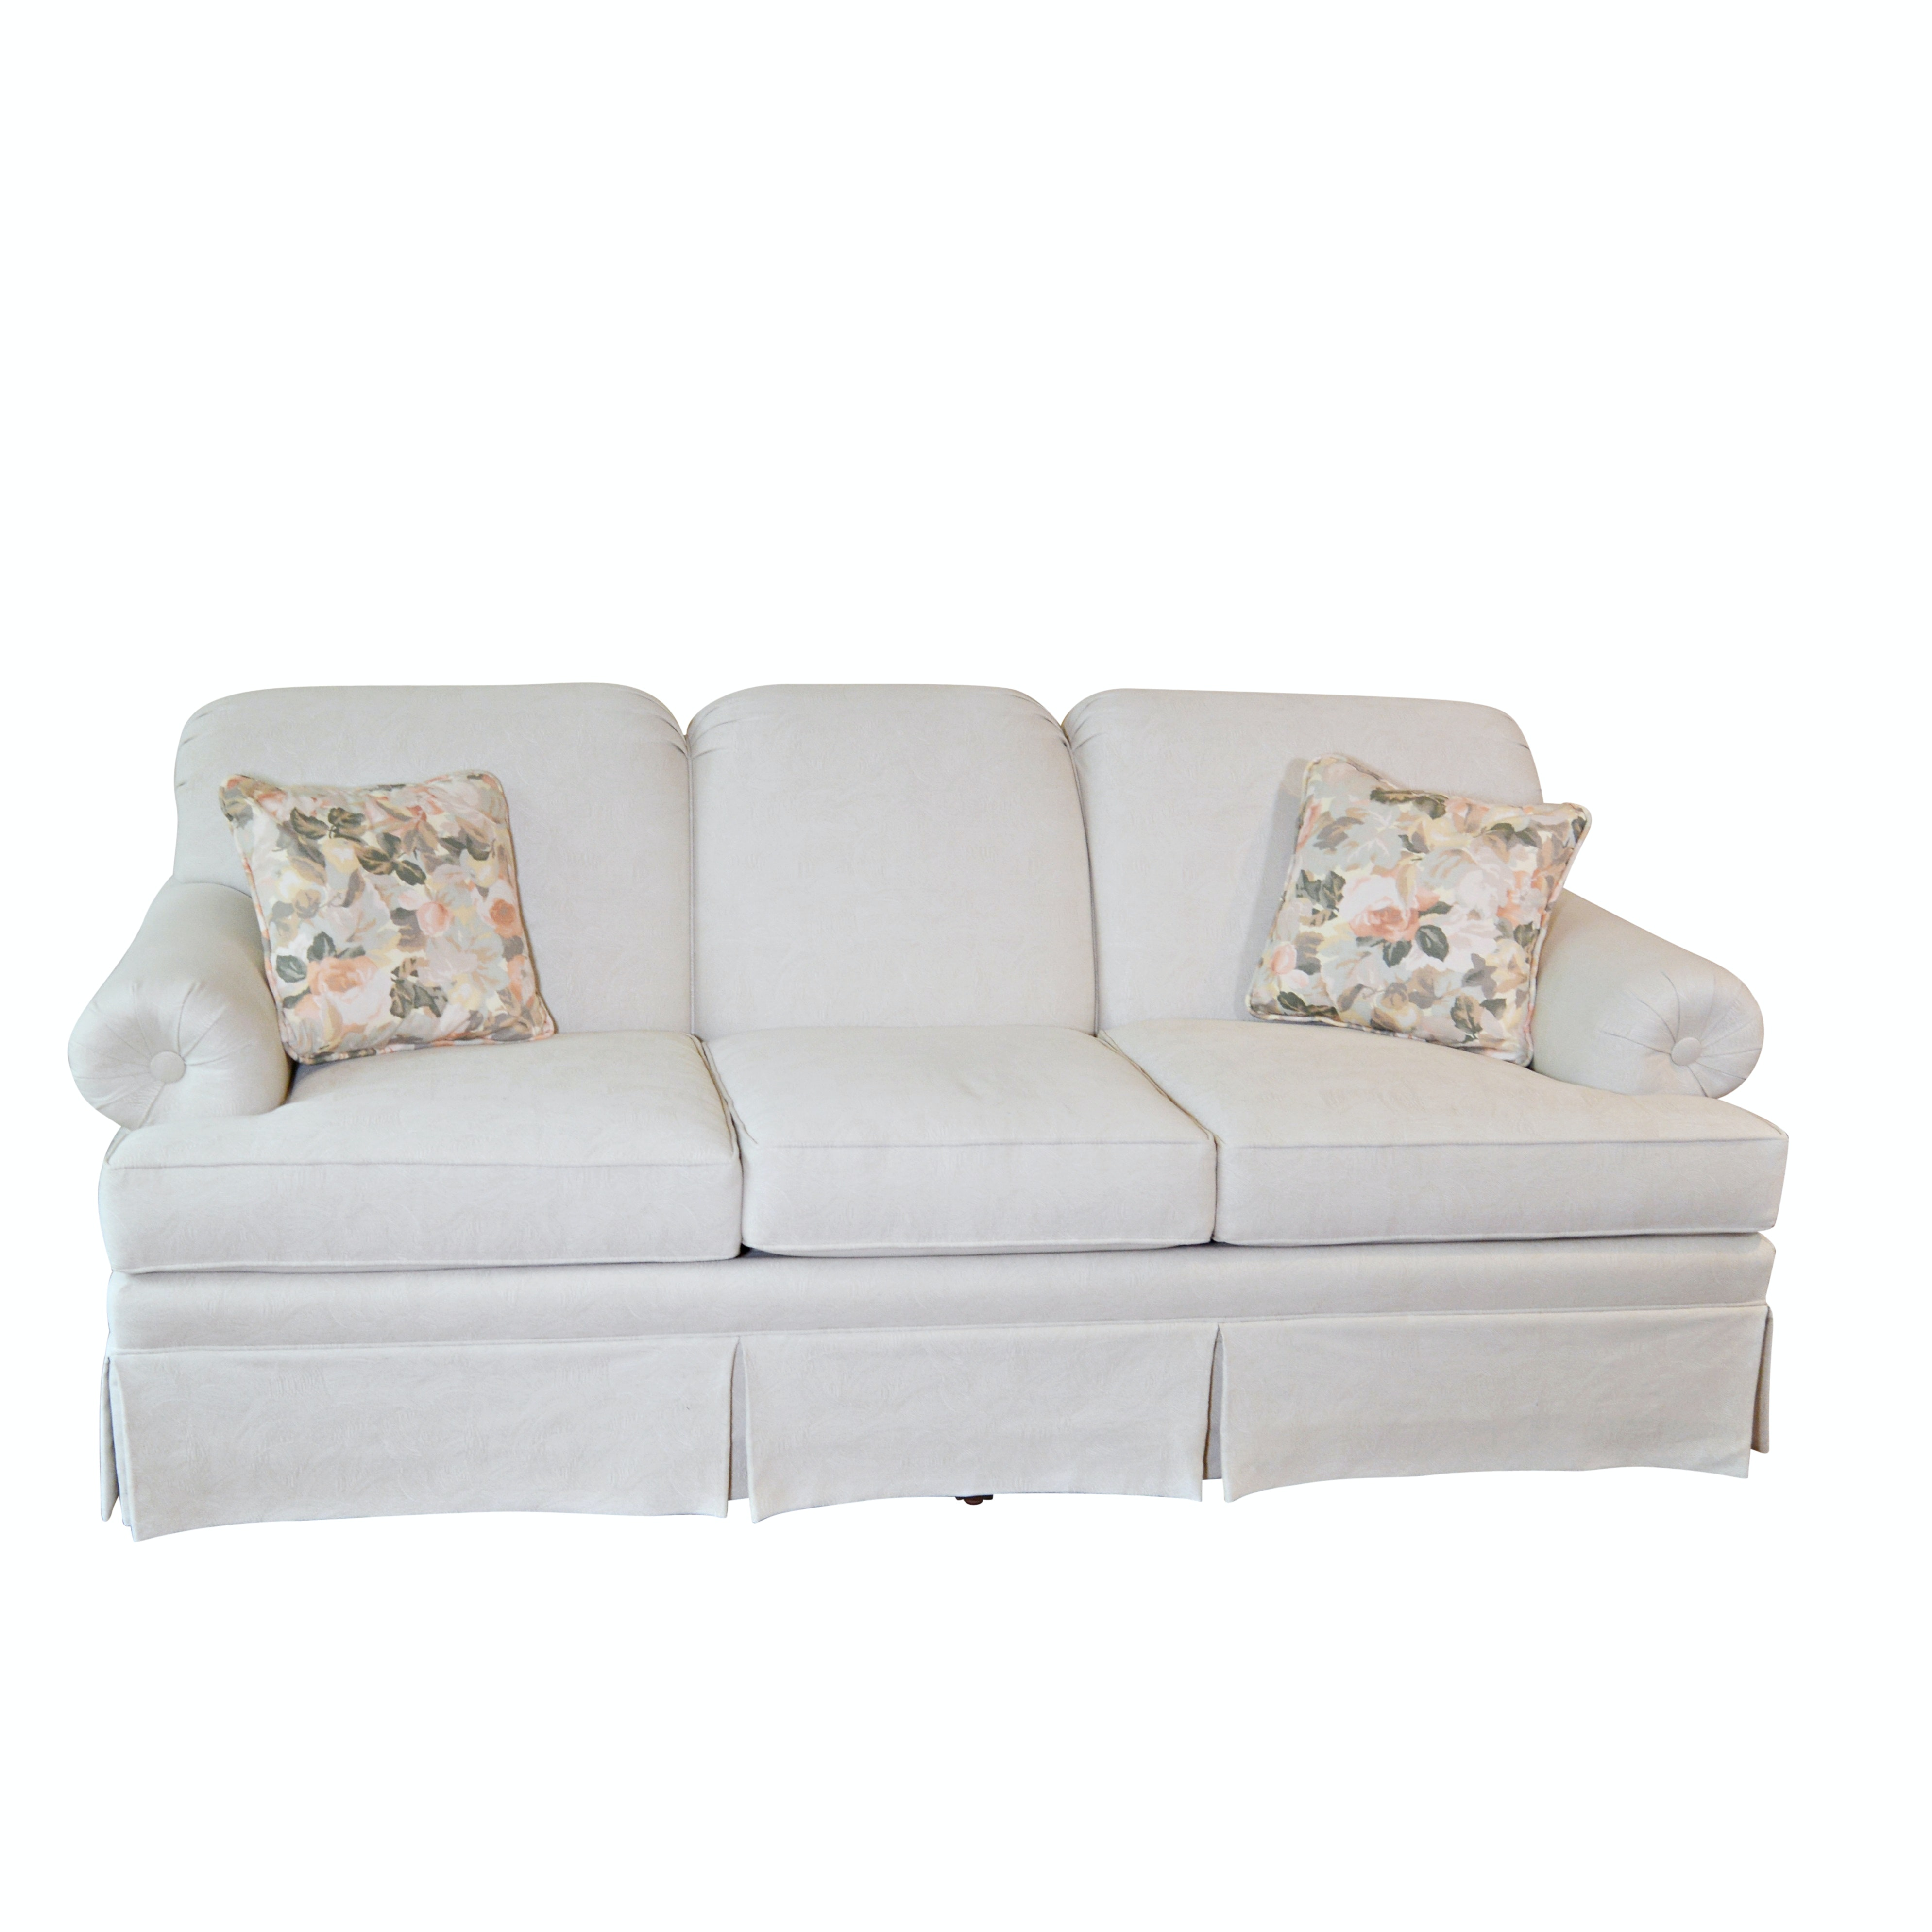 Contemporary Taupe Patterned Sofa by Ethan Allen